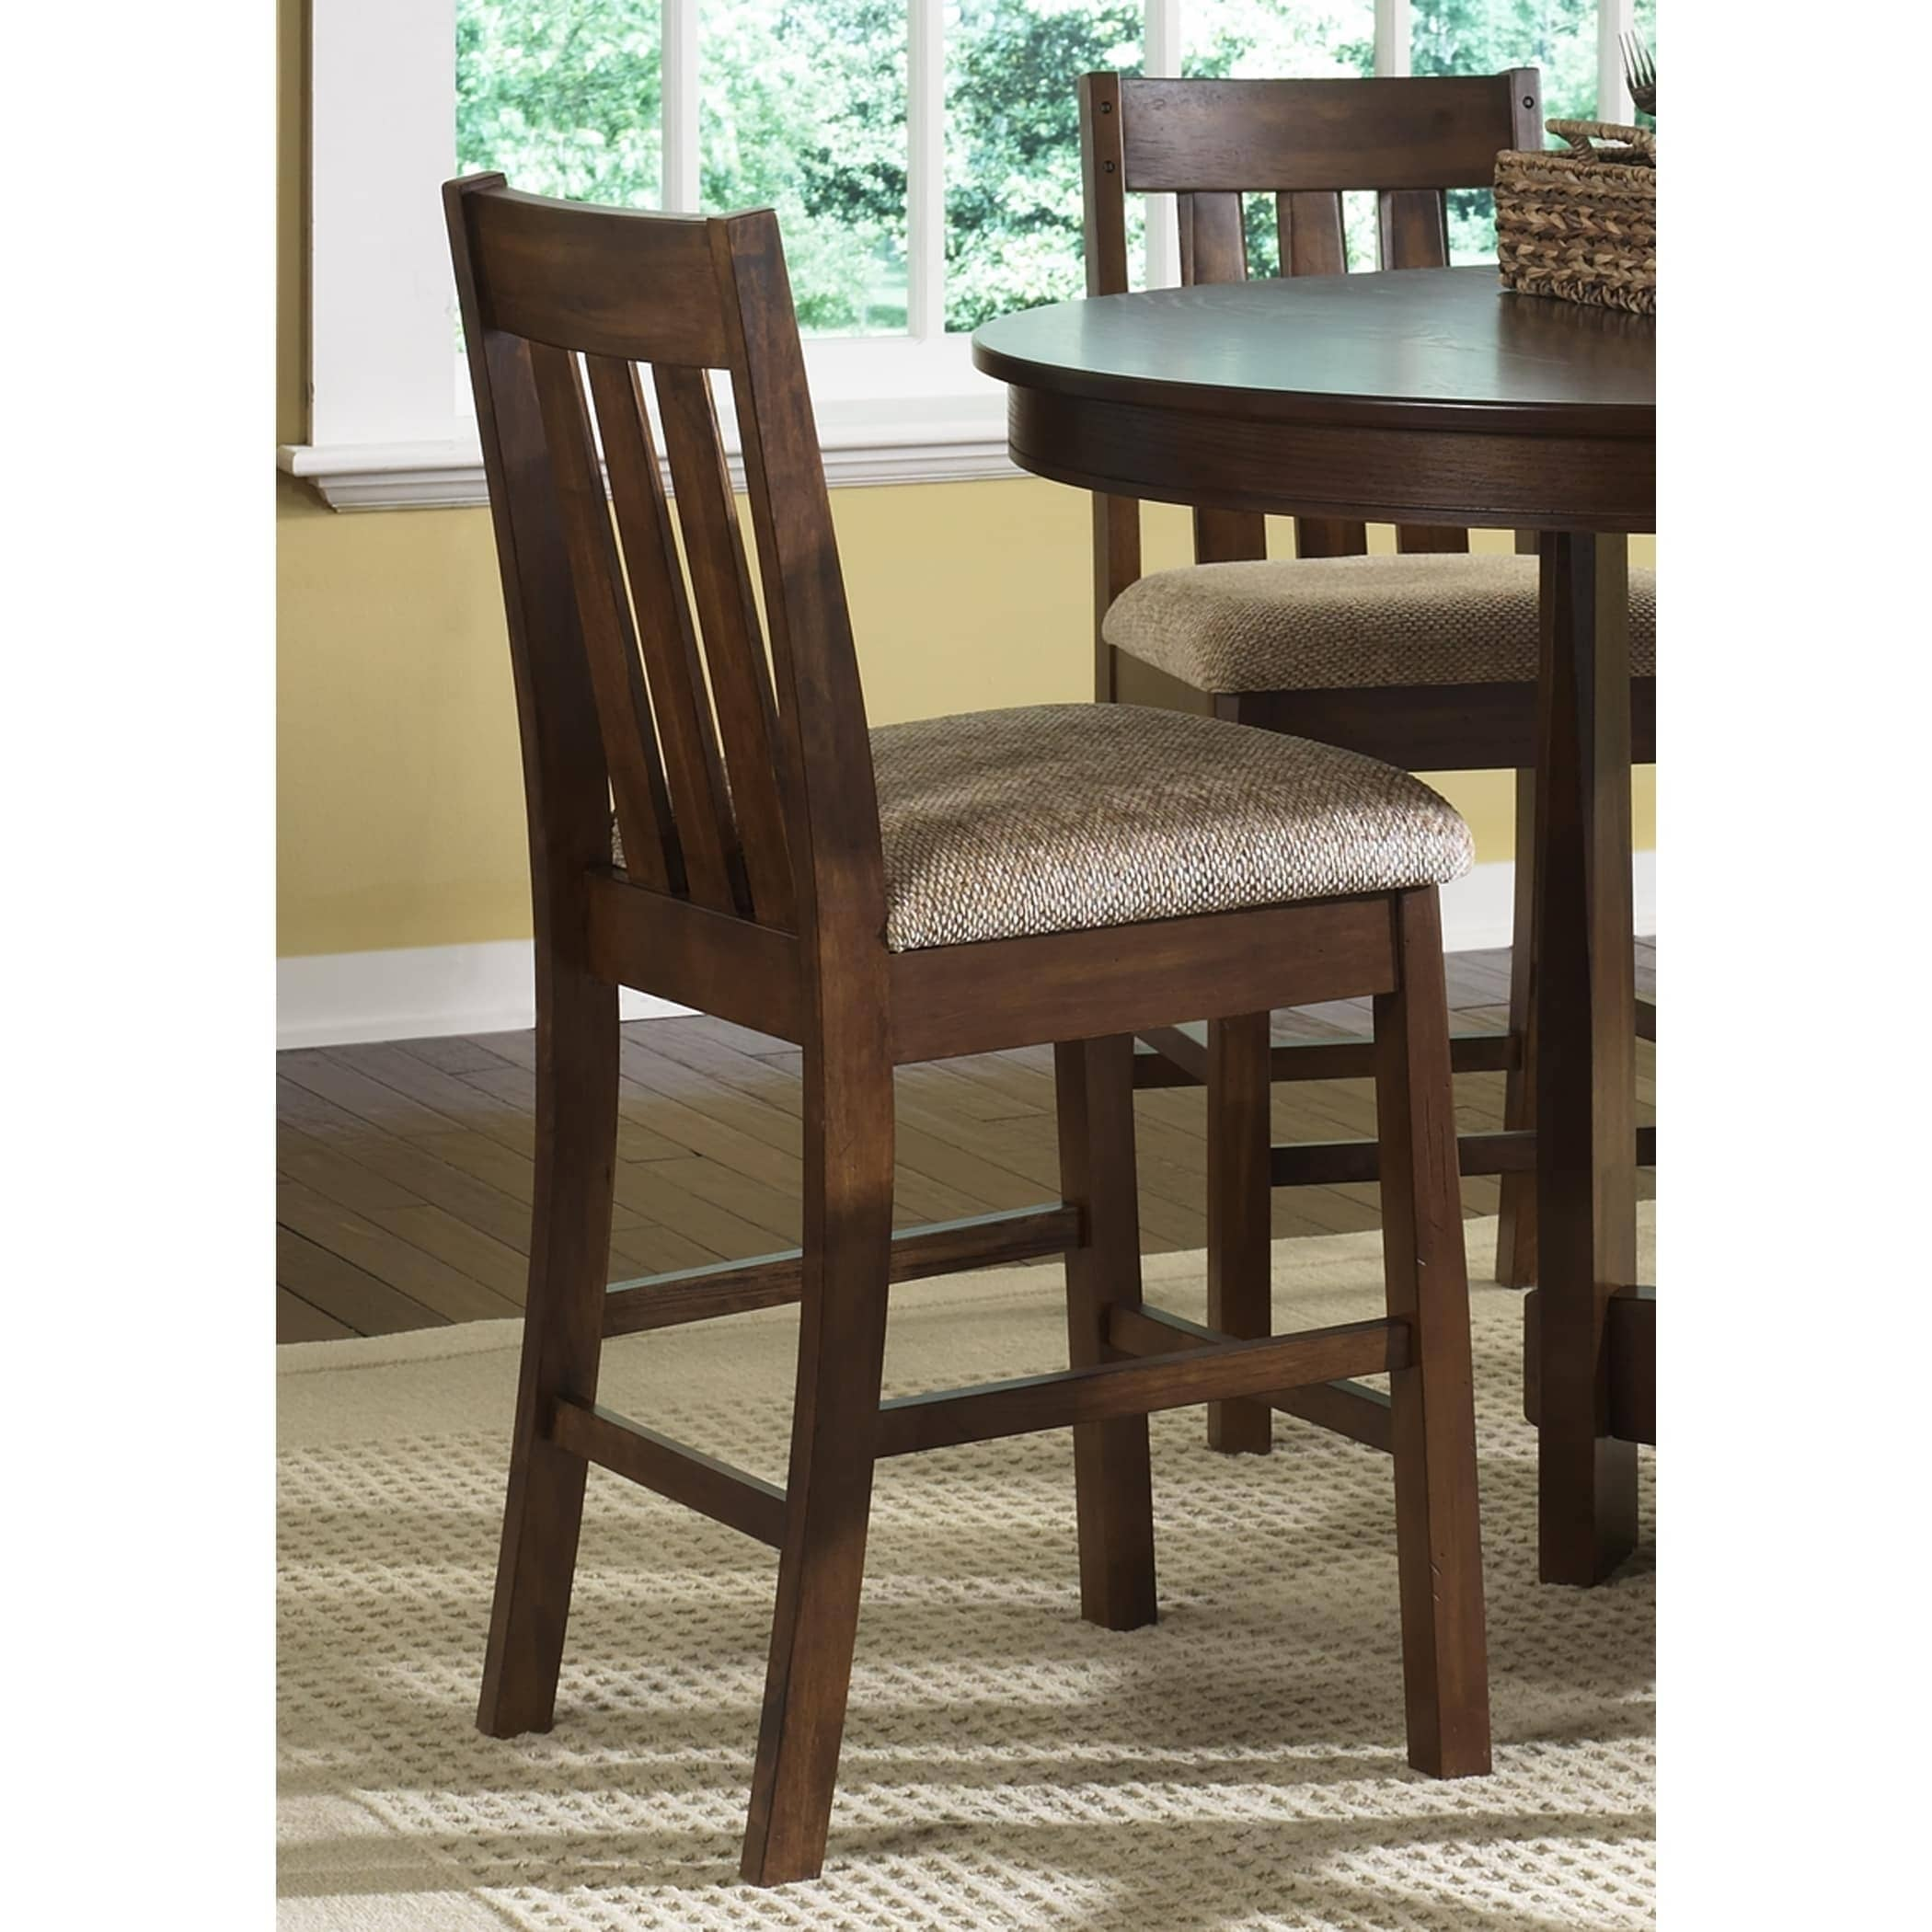 Shop urban mission dark oak counter height upholstered barstool free shipping today overstock com 10658114